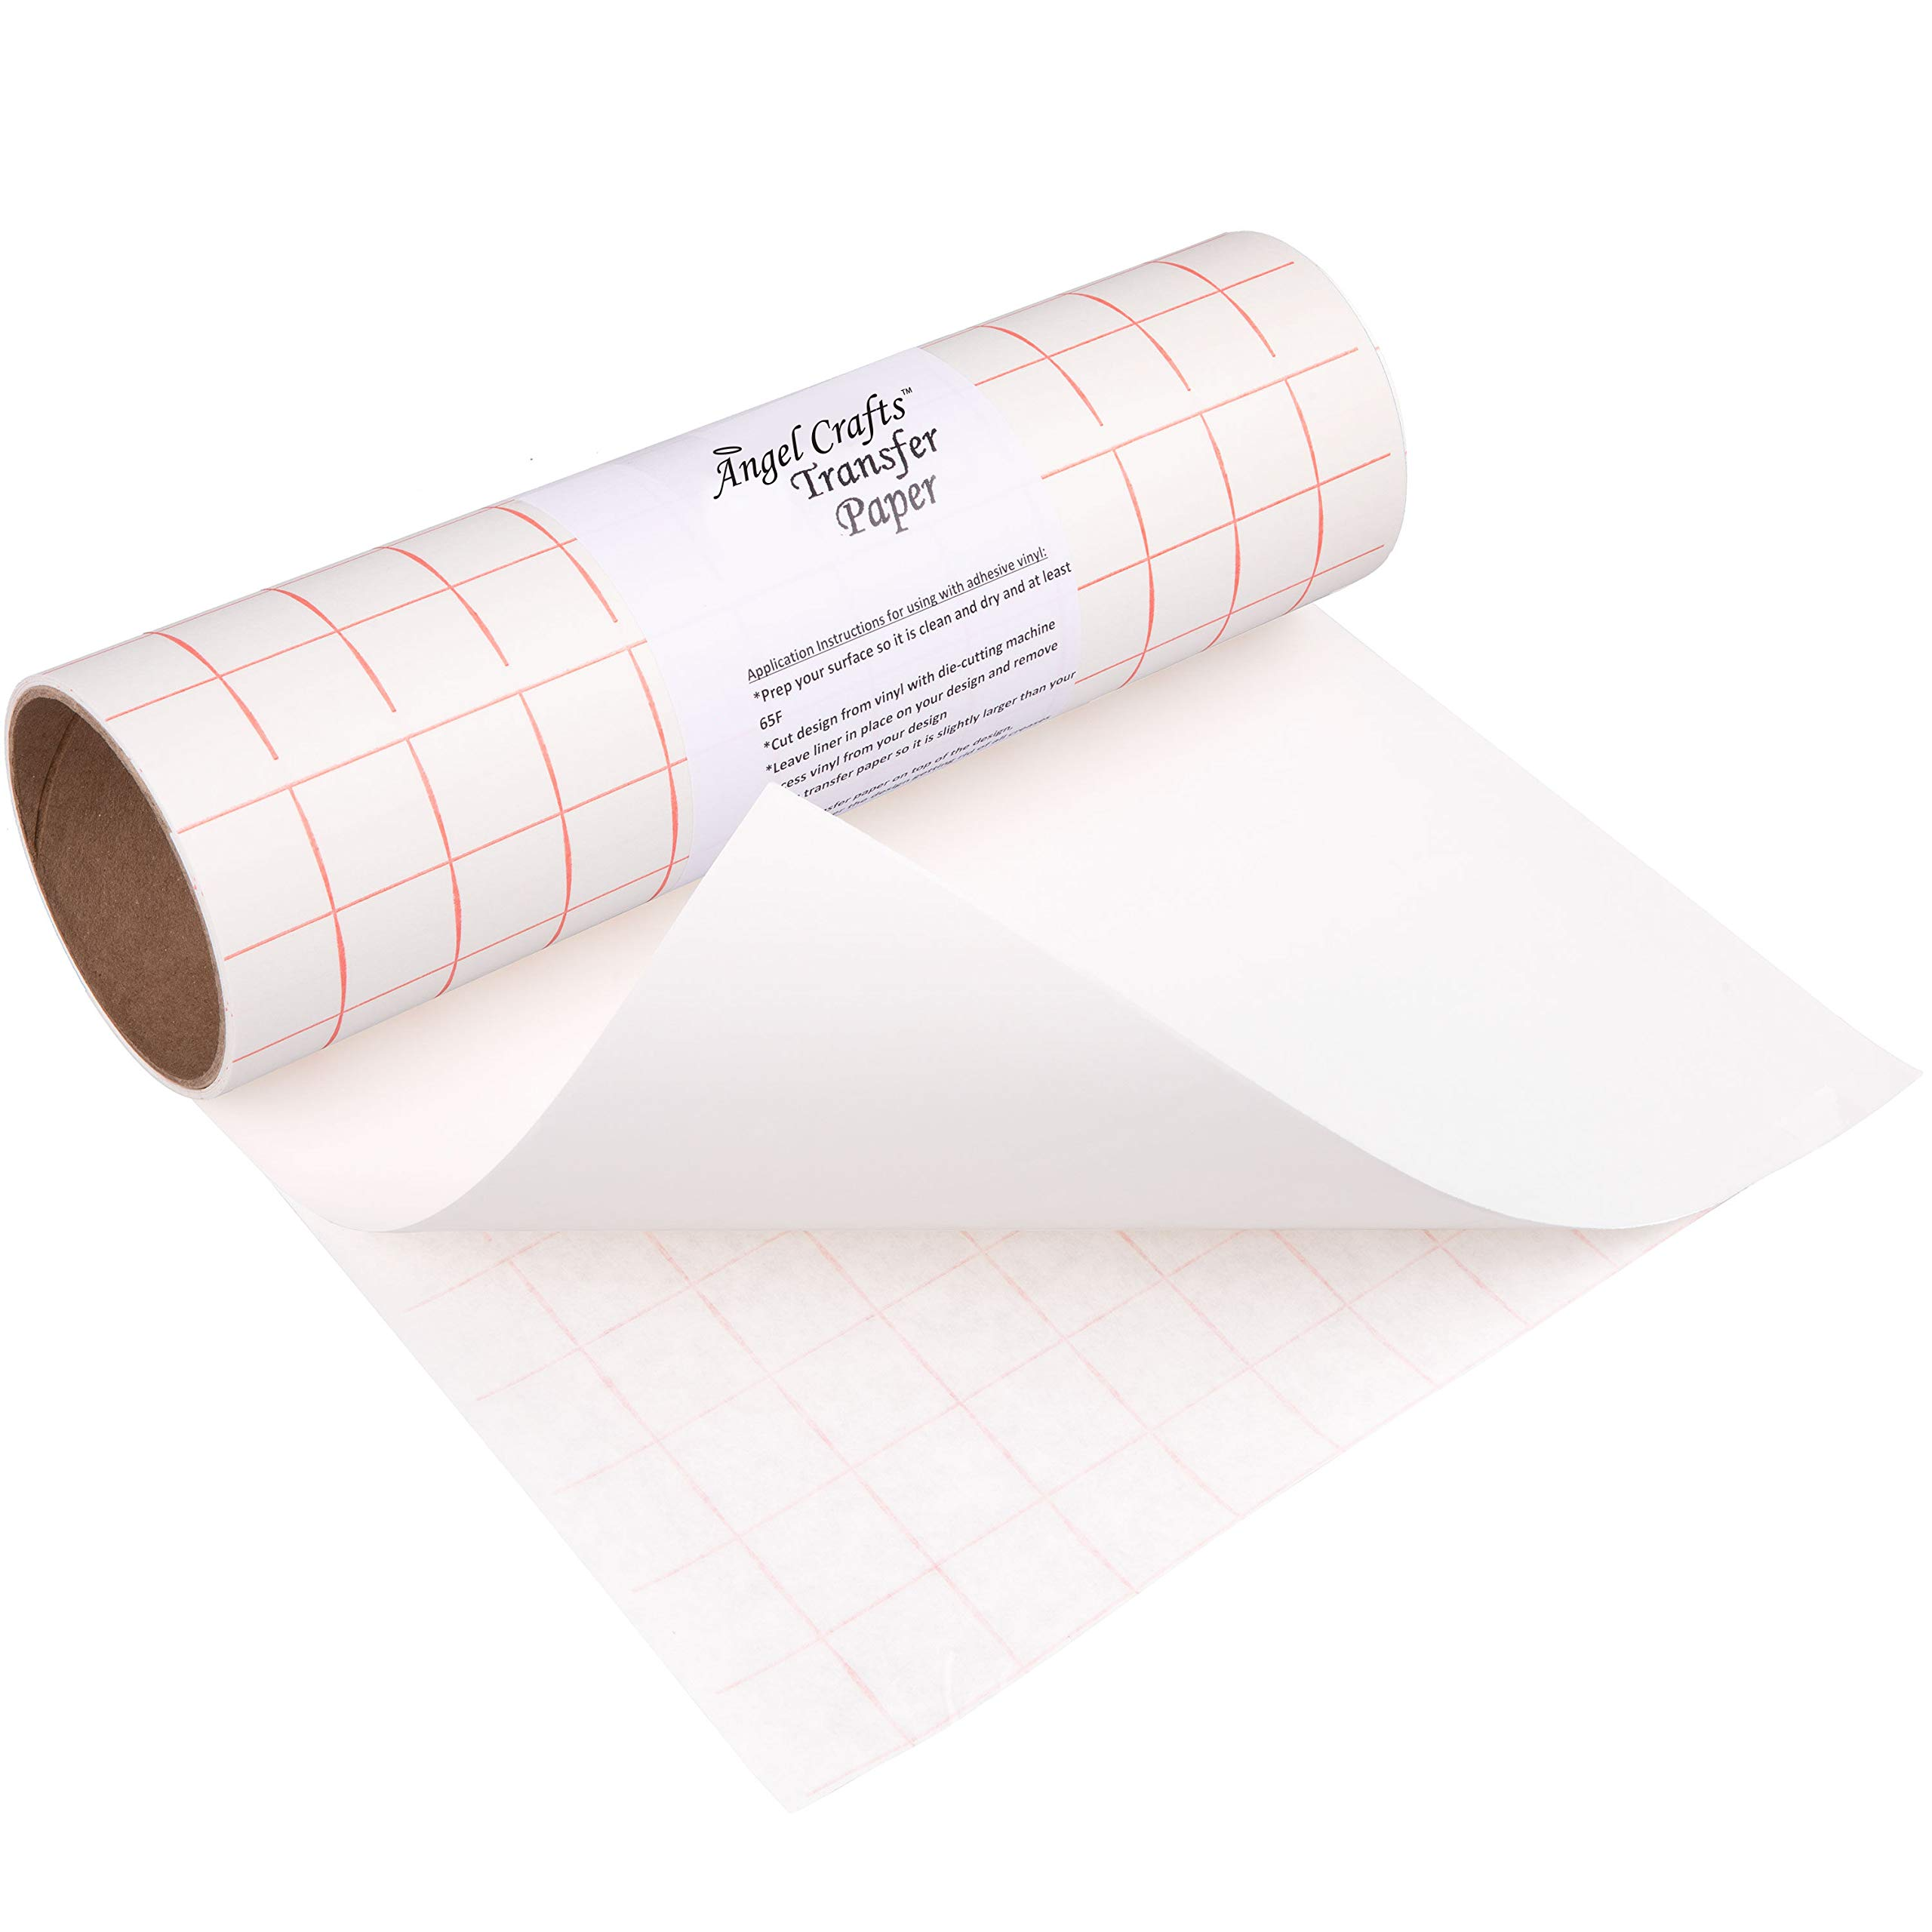 Angel Crafts Transfer Paper Tape: Craft Transfer Tape for Vinyl Application with Red Grid Lines - Self Adhesive Transfer Paper Roll Compatible with Cricut, Silhouette Cameo - 12 Inch by 8 Feet, White by Angel Crafts